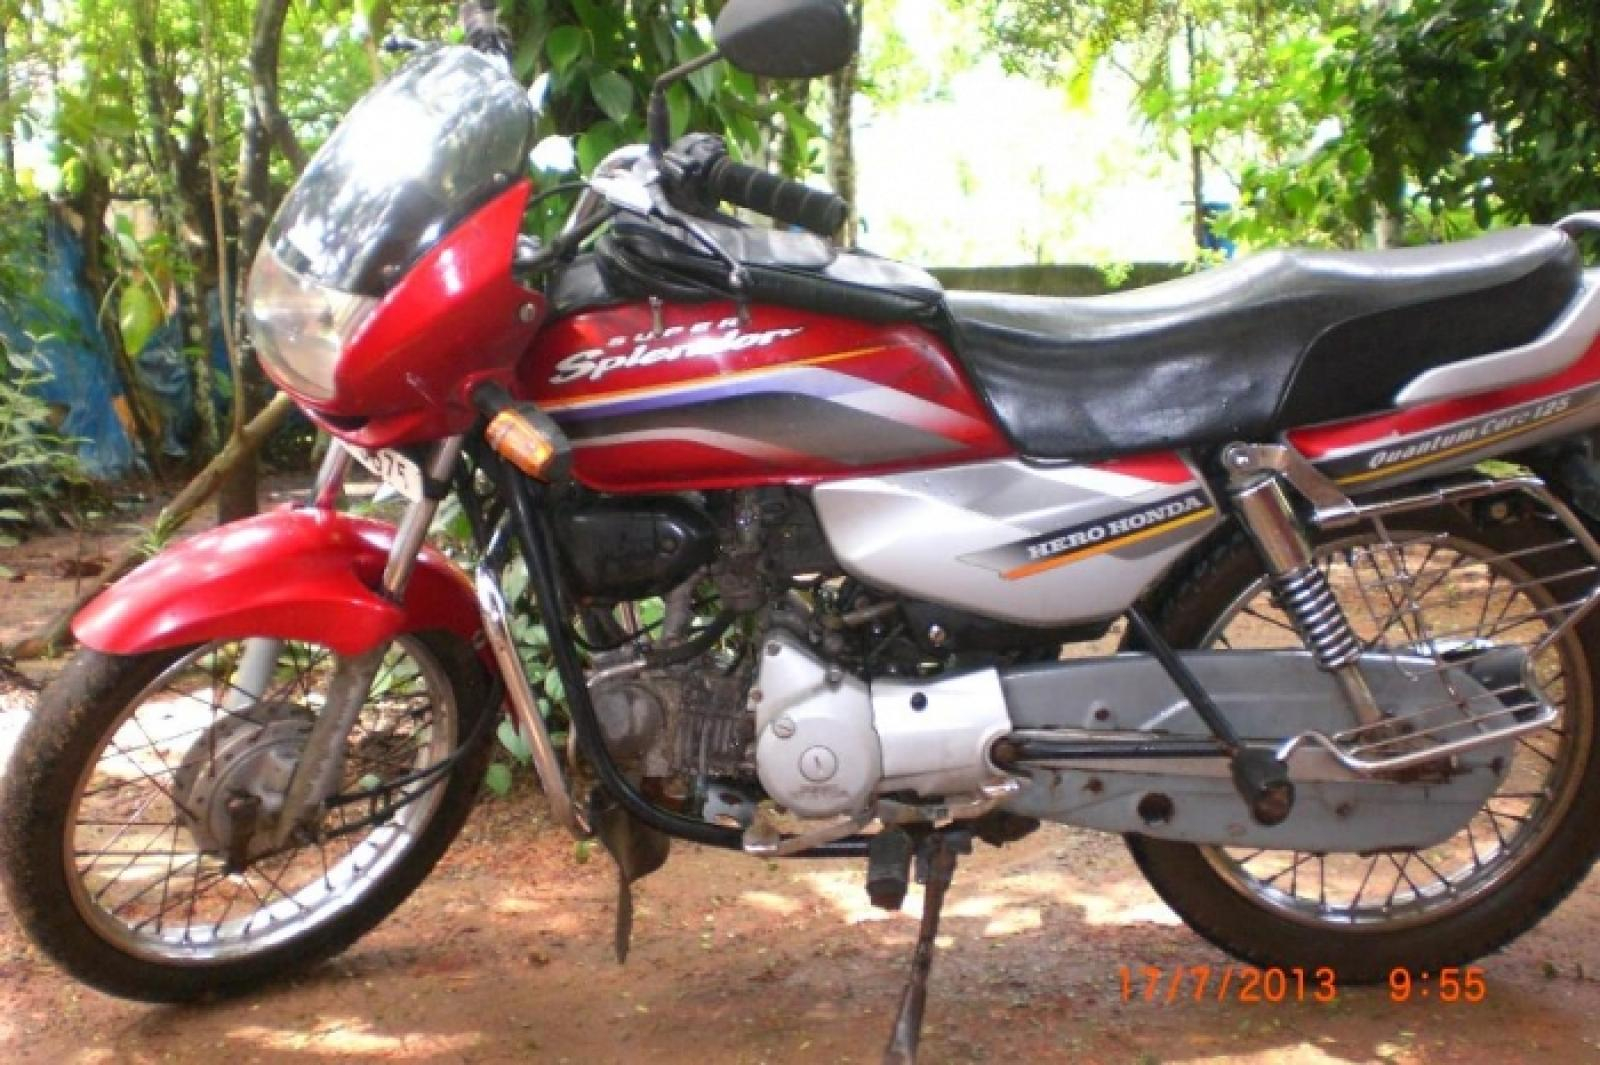 Hero Honda 125 Super Splendor 2008 images #74795